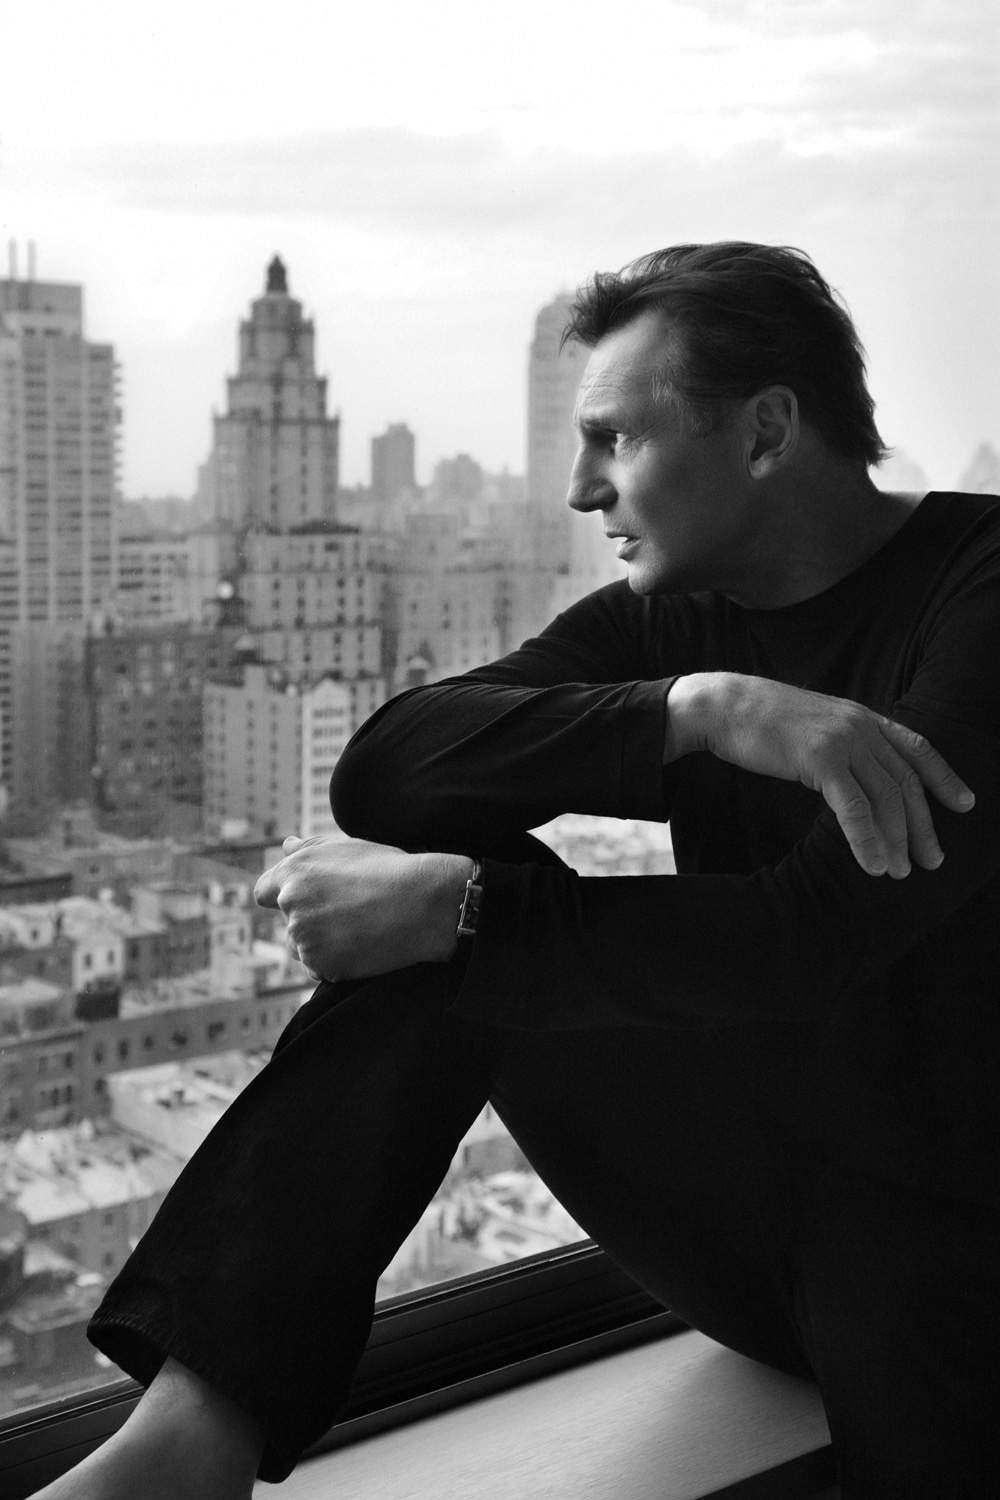 LIAM NEESON PHOTOGRAPHED AT HOME BY BARRY MCCALL FOR PHO20GRAPHY